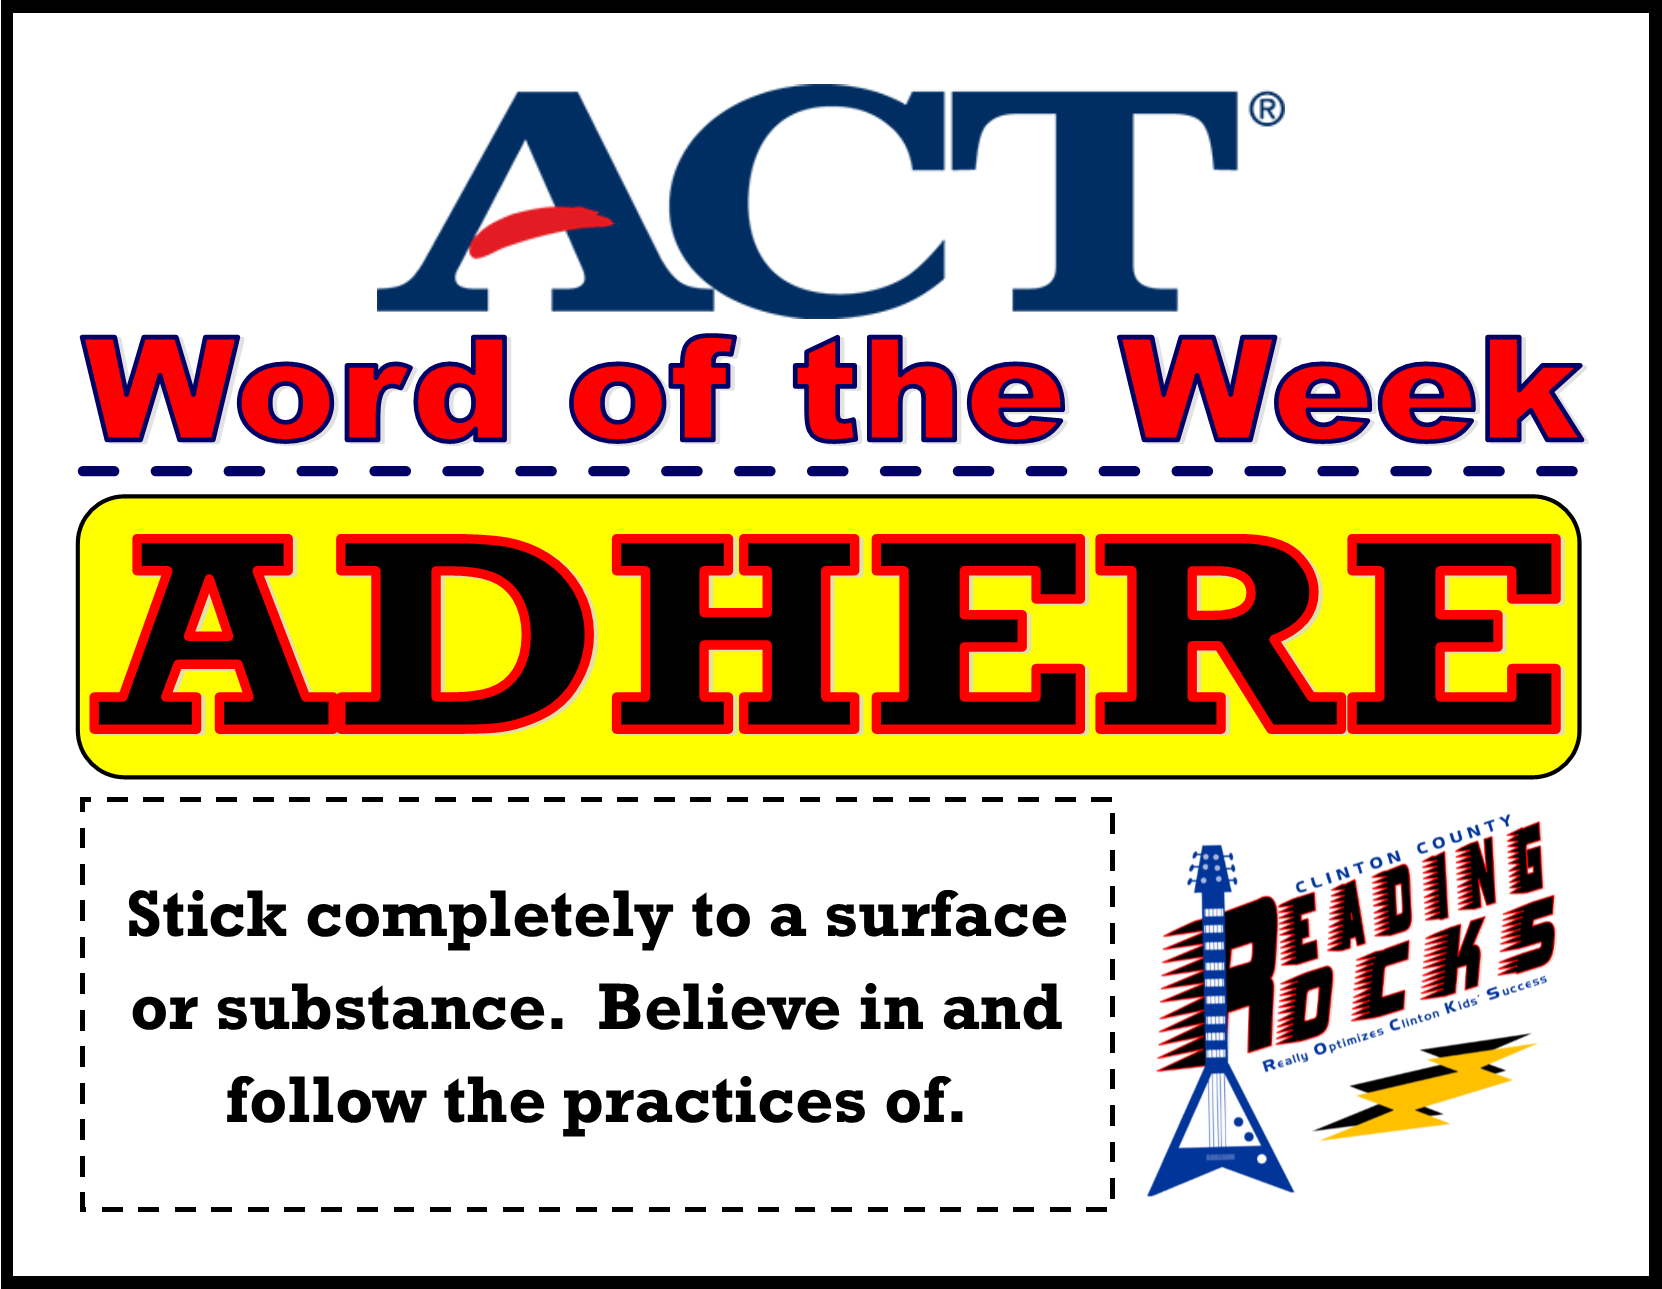 ACT Word of the Week - ADHERE